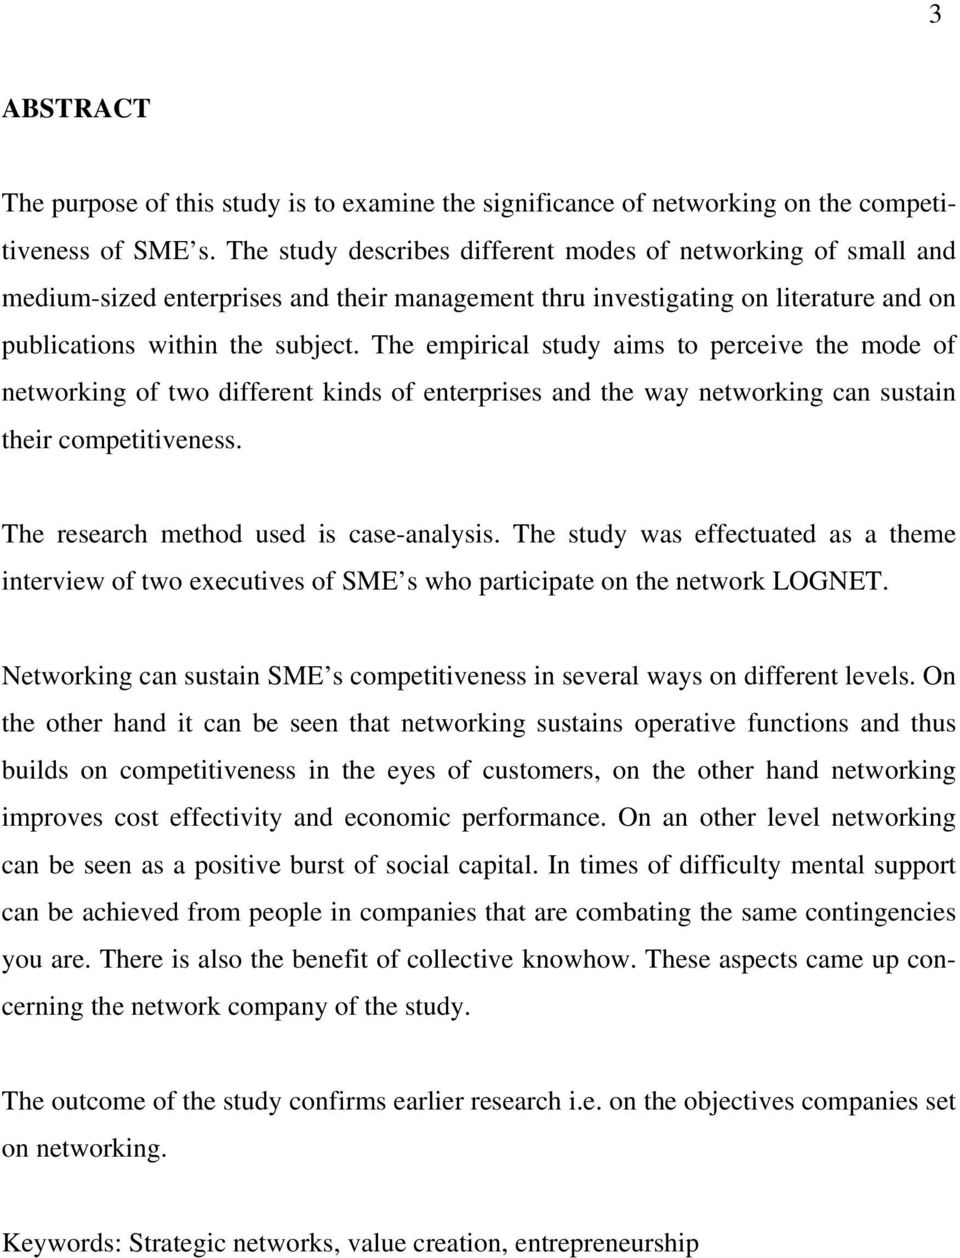 The empirical study aims to perceive the mode of networking of two different kinds of enterprises and the way networking can sustain their competitiveness. The research method used is case-analysis.